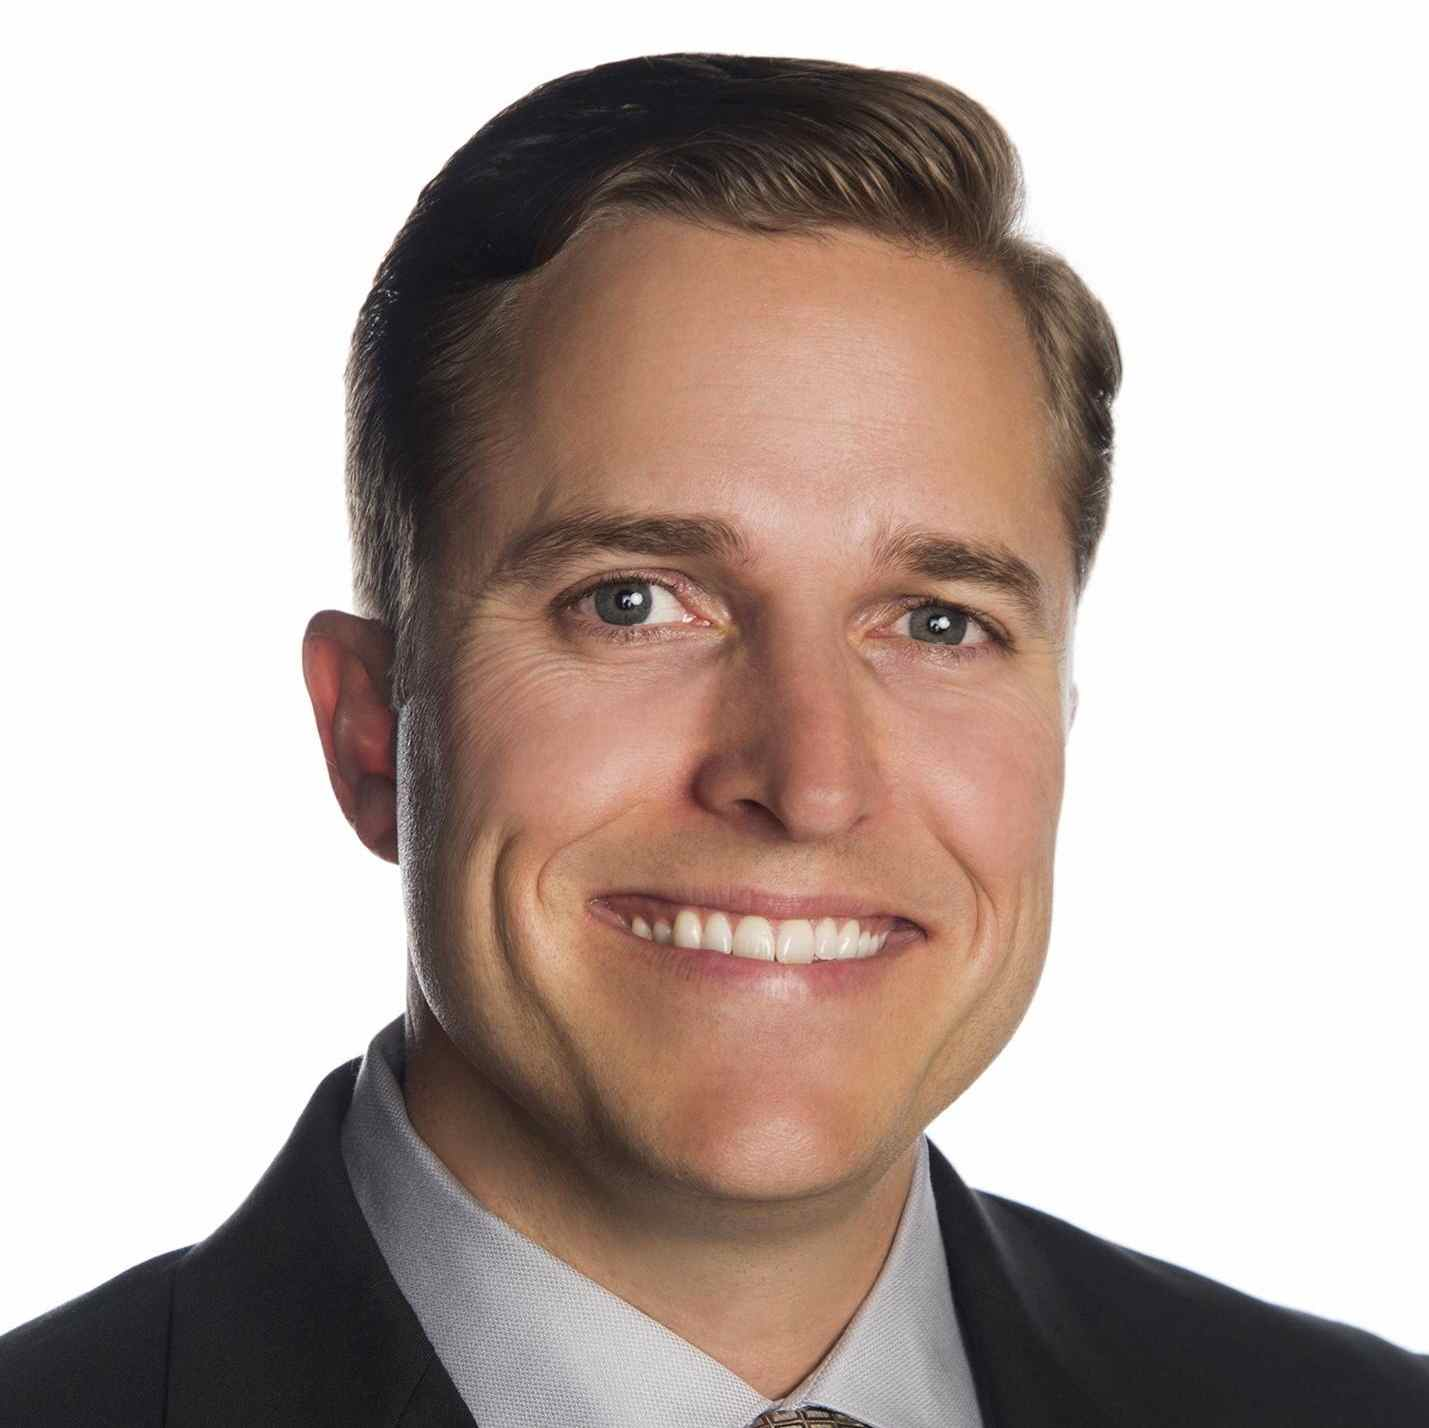 Joel Comp, Mortgage Banker, Reaches Top of Amazon Best Seller List with New Book